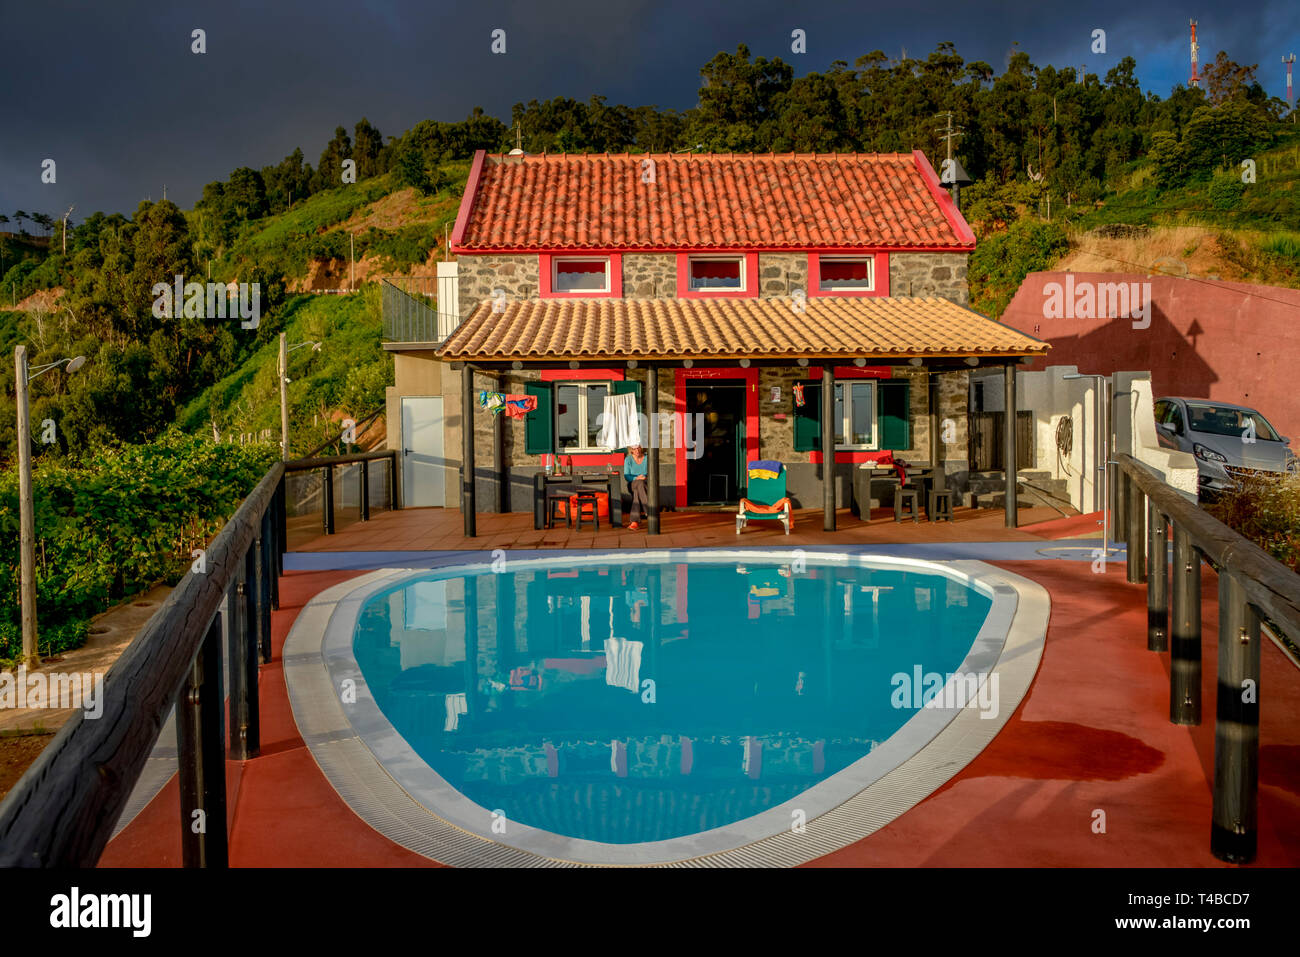 Ferienhaus Mit Pool Madeira Houses With Swimming Pools Stock Photos Houses With Swimming Pools